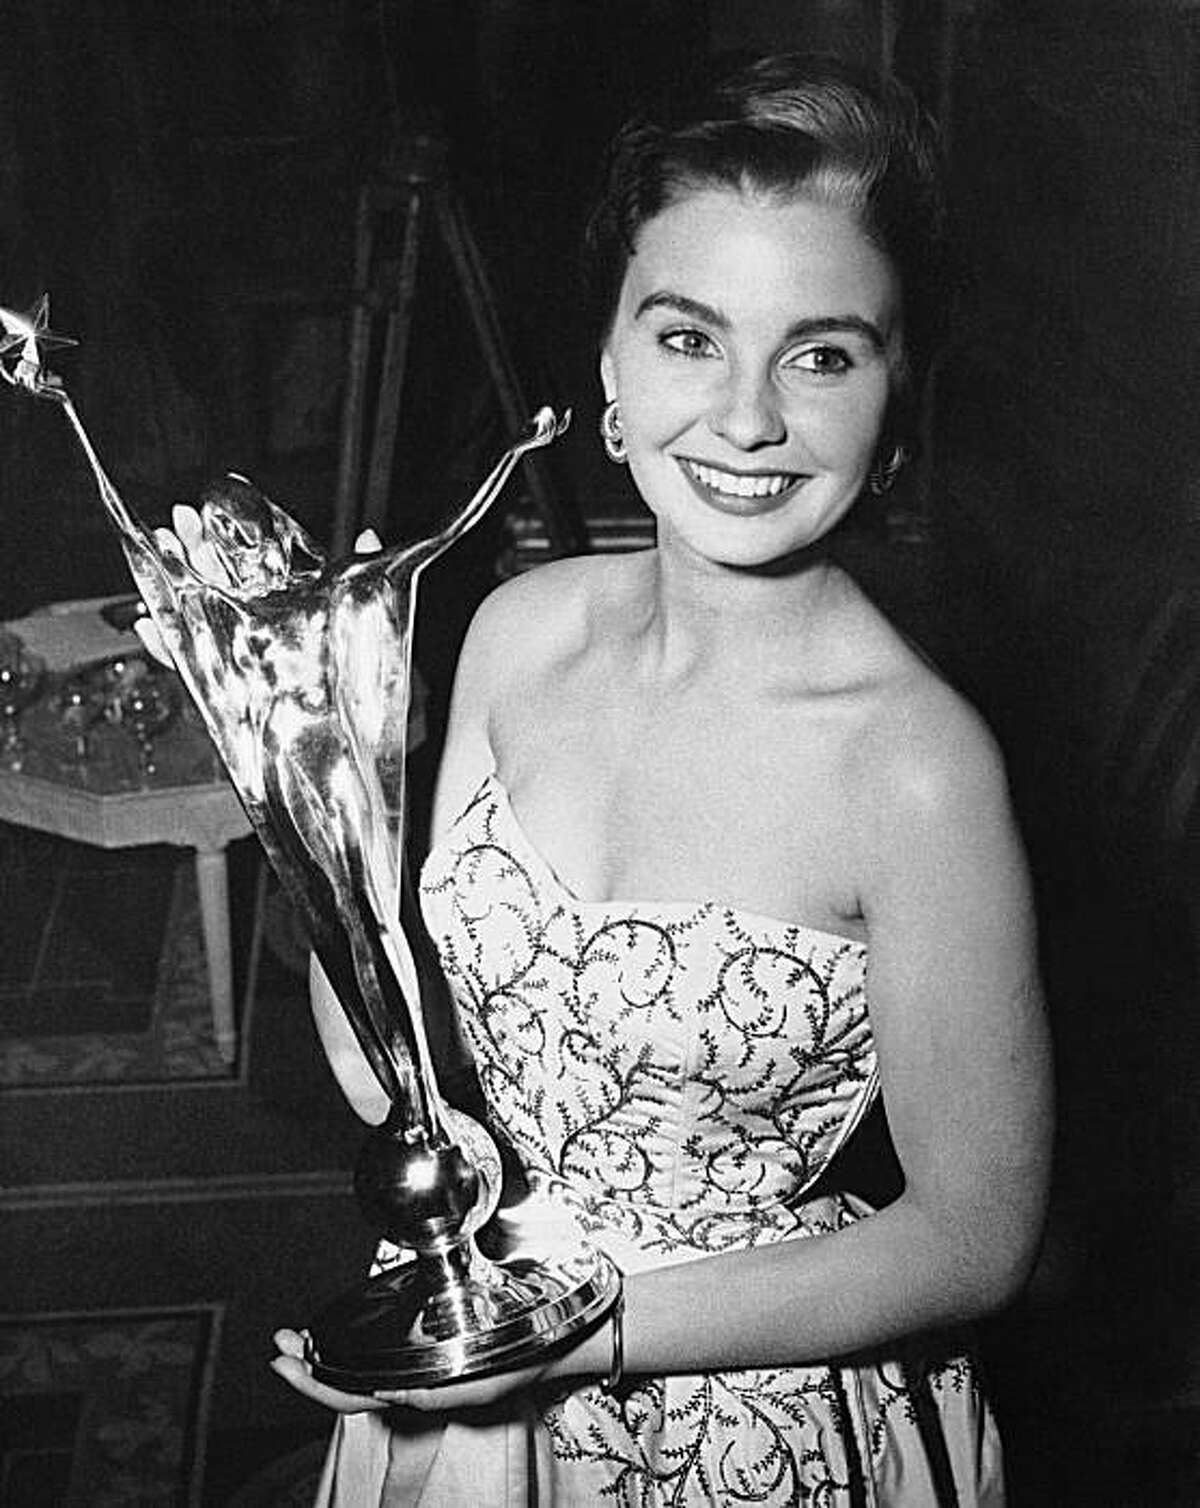 """In this May, 24, 1950 file photo, Jean Simmons, British screen actress, holds the trophy she receives in London after being voted her country's No. 1 film actress of the year in the fifth National Film Award ballot. Simmons, the stunning beauty who sang with Marlon Brando in """"Guys and Dolls"""" and played Ophelia to Laurence Olivier's Hamlet died Friday, Jan. 22, 2010. She was 80."""